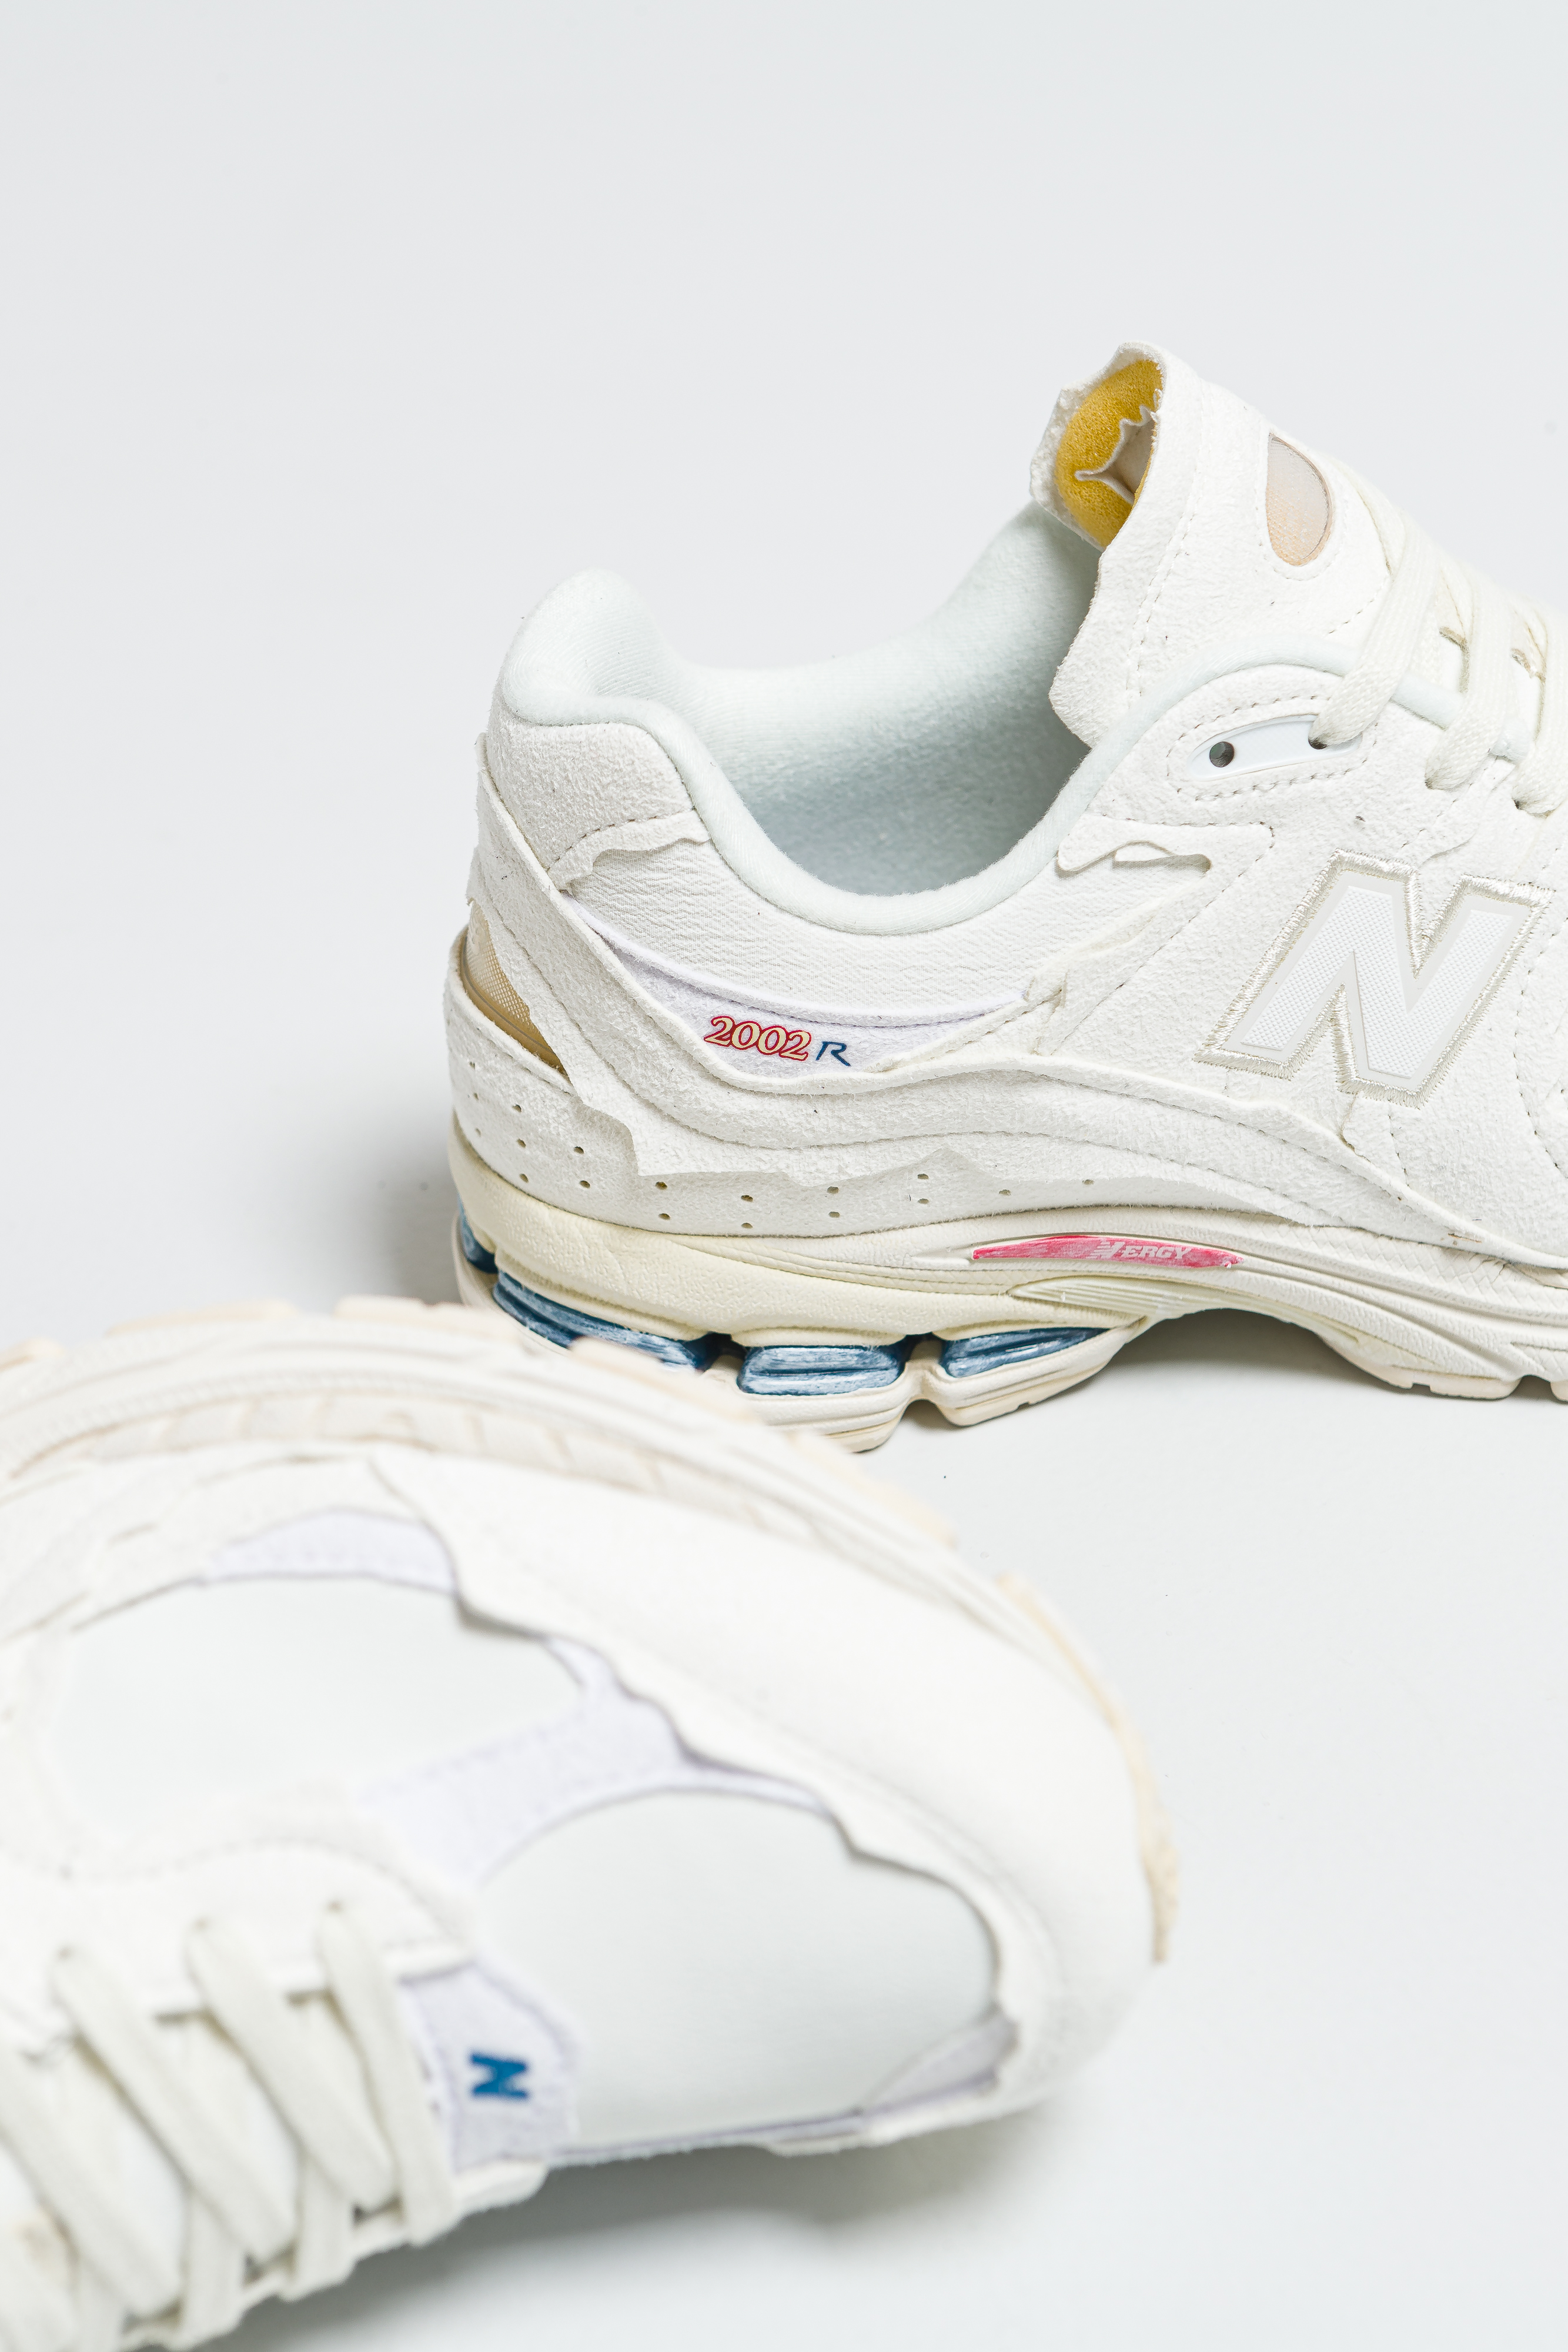 Up There Launches - New Balance 2002 'Refined Future' Pack